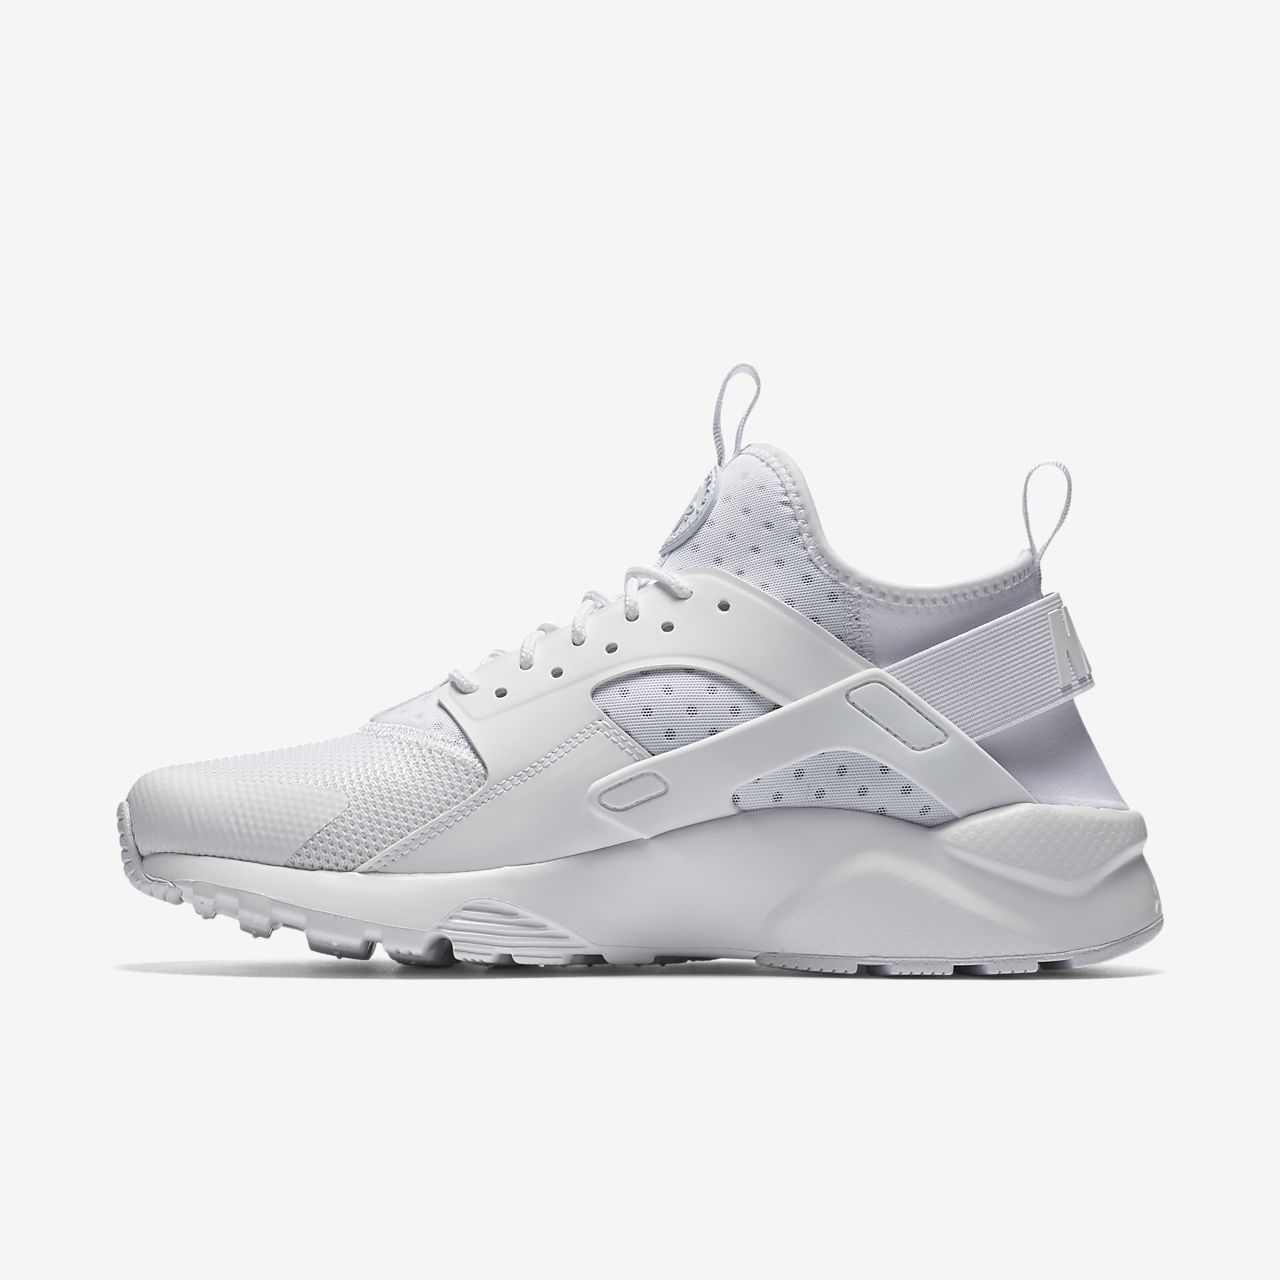 272932eb57a9 Nike Air Huarache Ultra Men s Shoe. Nike.com AU